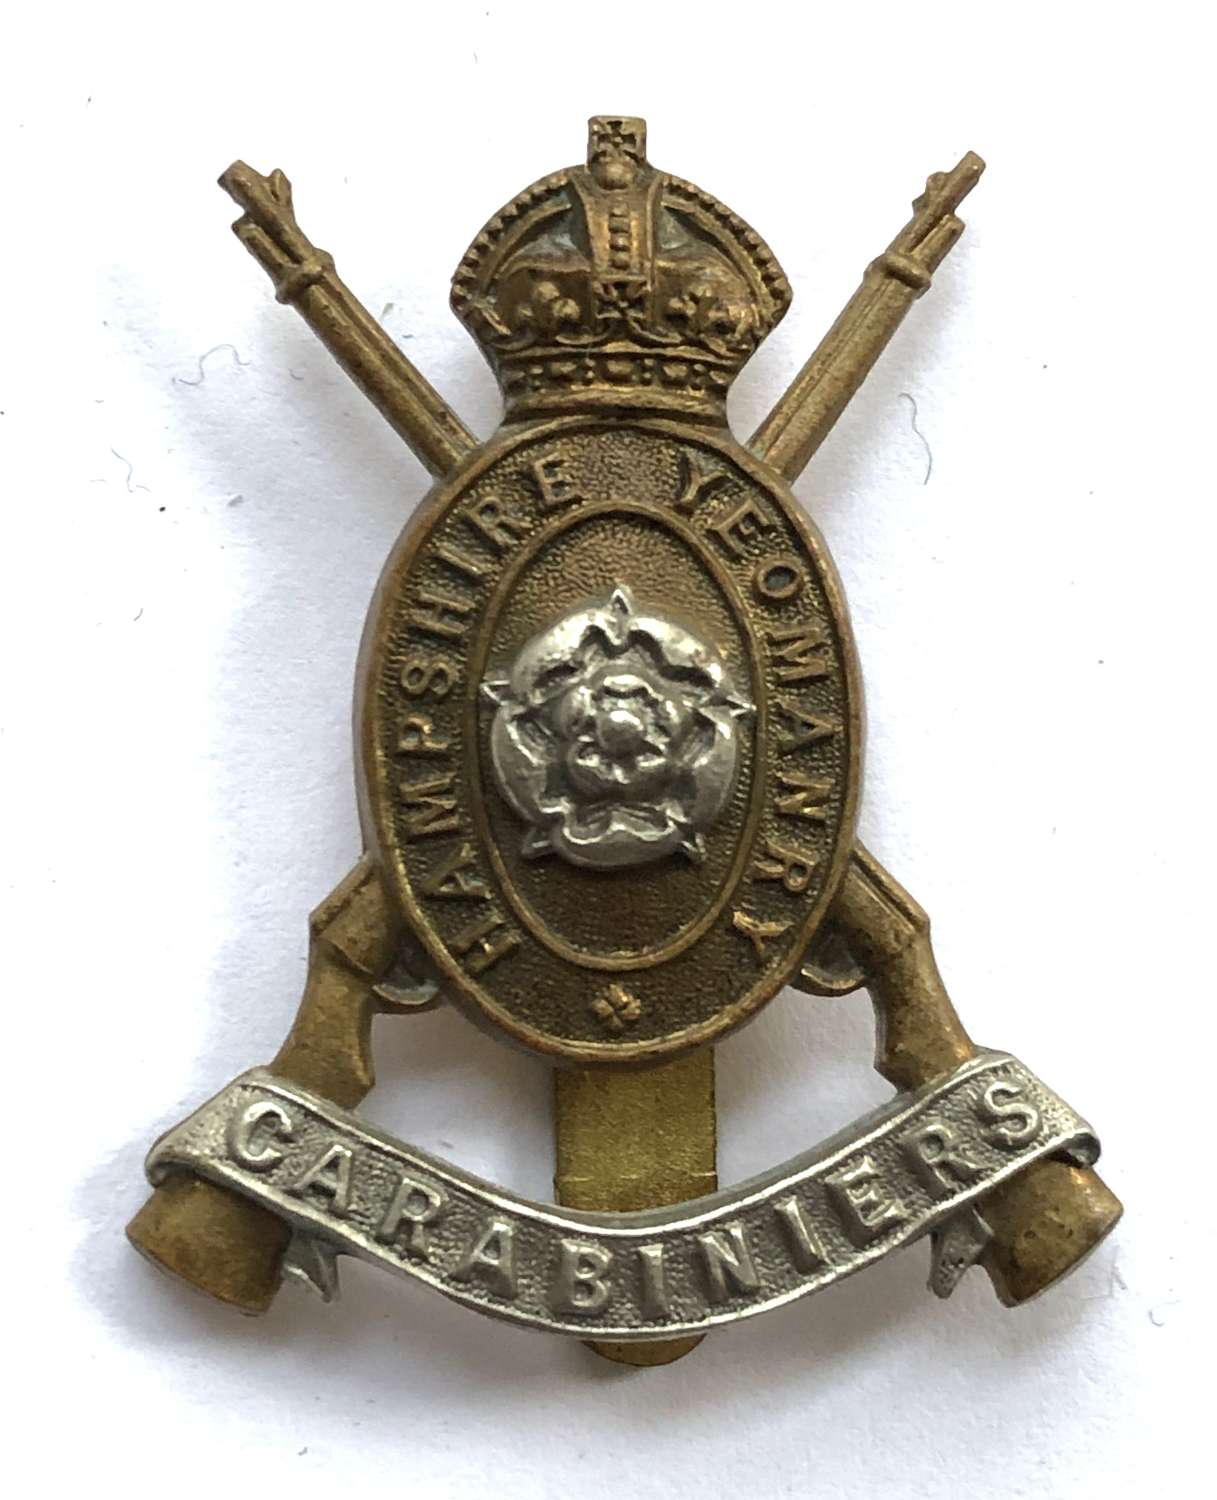 Hampshire Yeomanry Carabiniers bi-metal cap badge by J.R.Gaunt, London